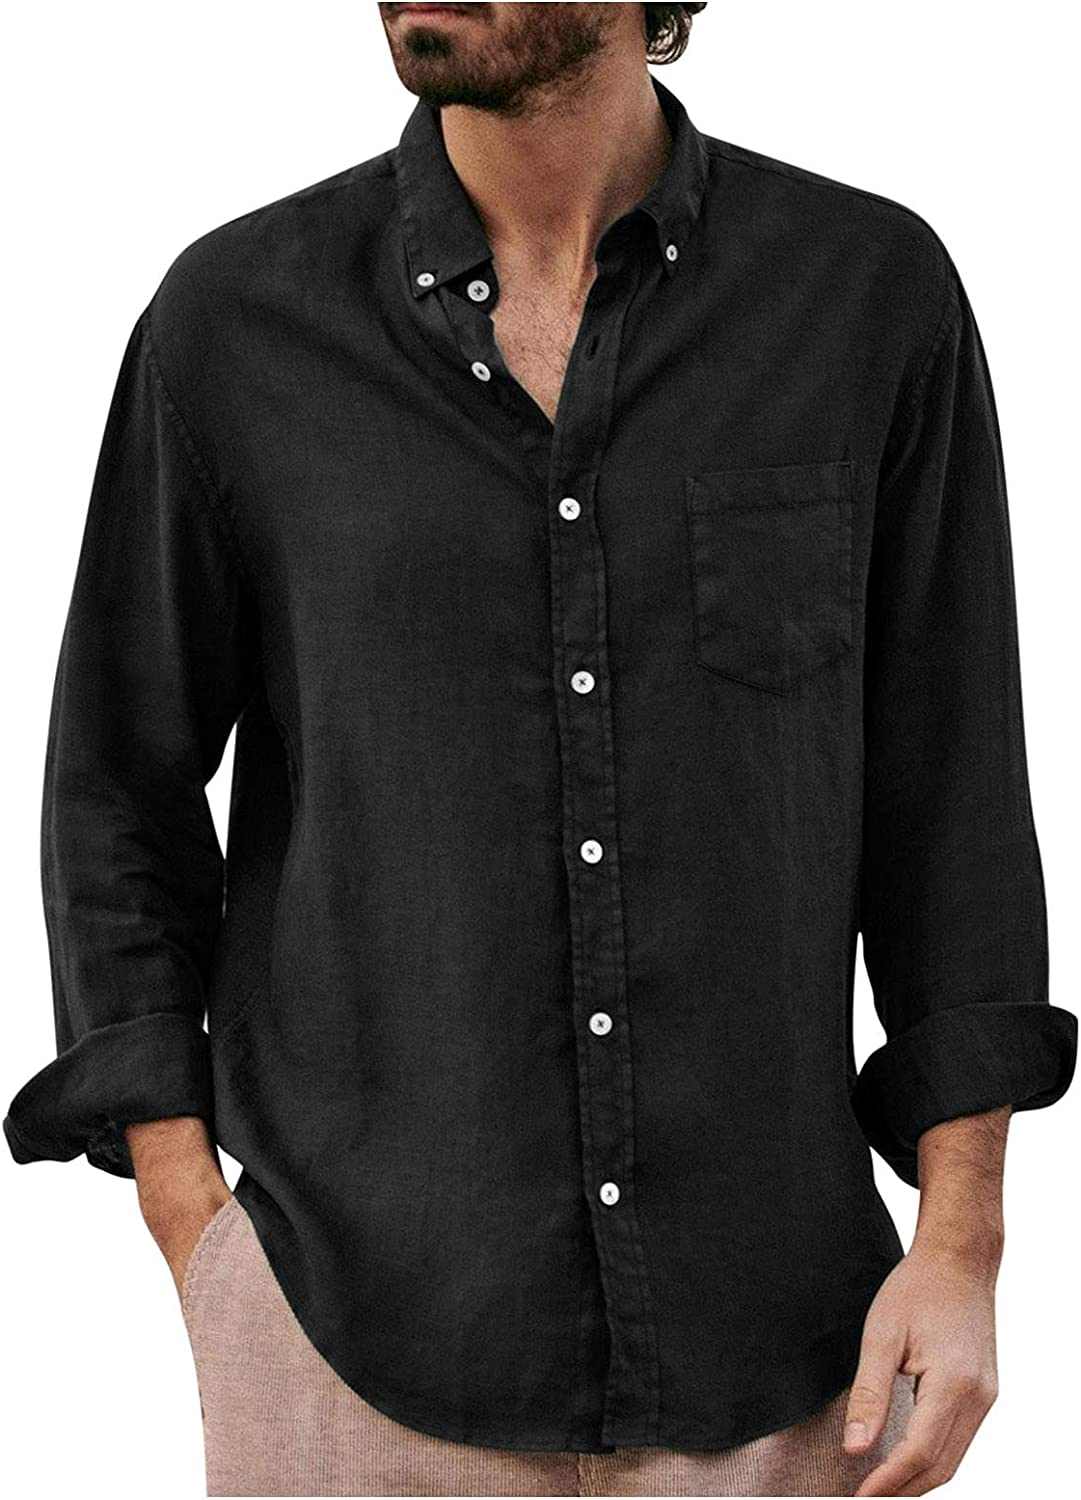 Mens Linen Shirts Long Sleeve Casual Button Up Loose Fit Beach Henley Shirts Summer Tops with Pocket